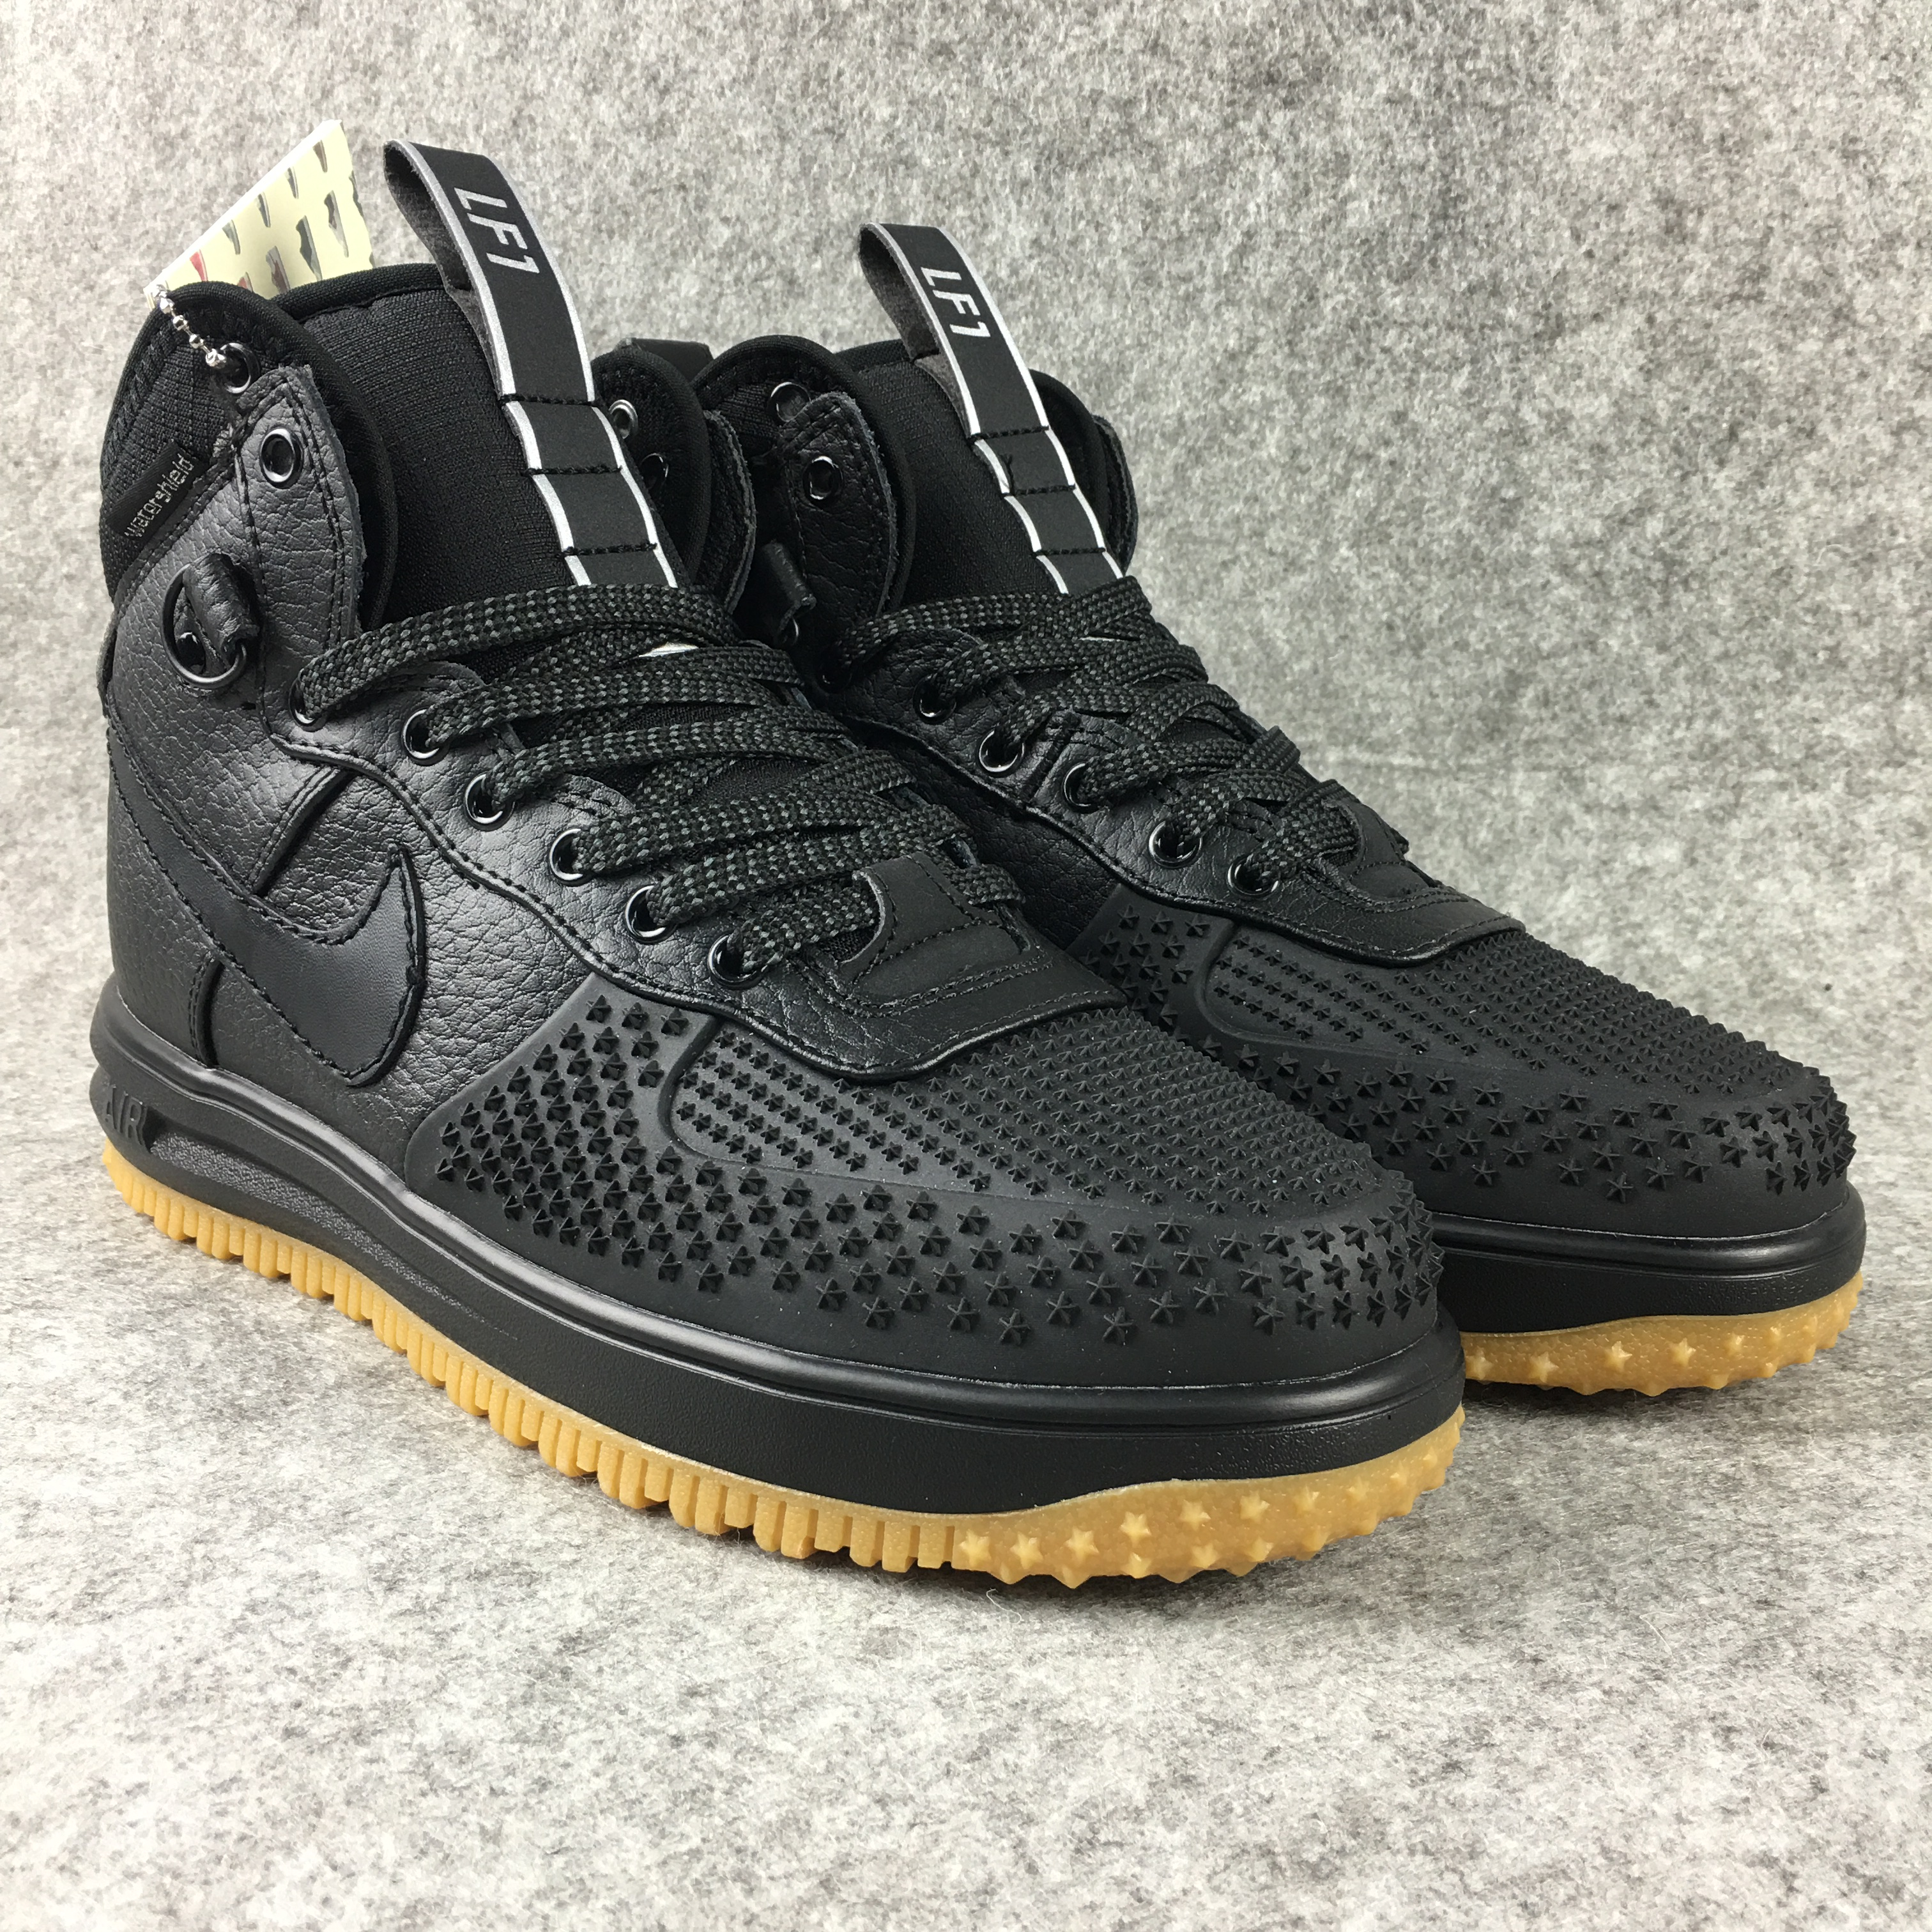 New Nike Lunar Force 1 High All Black Gum Sole